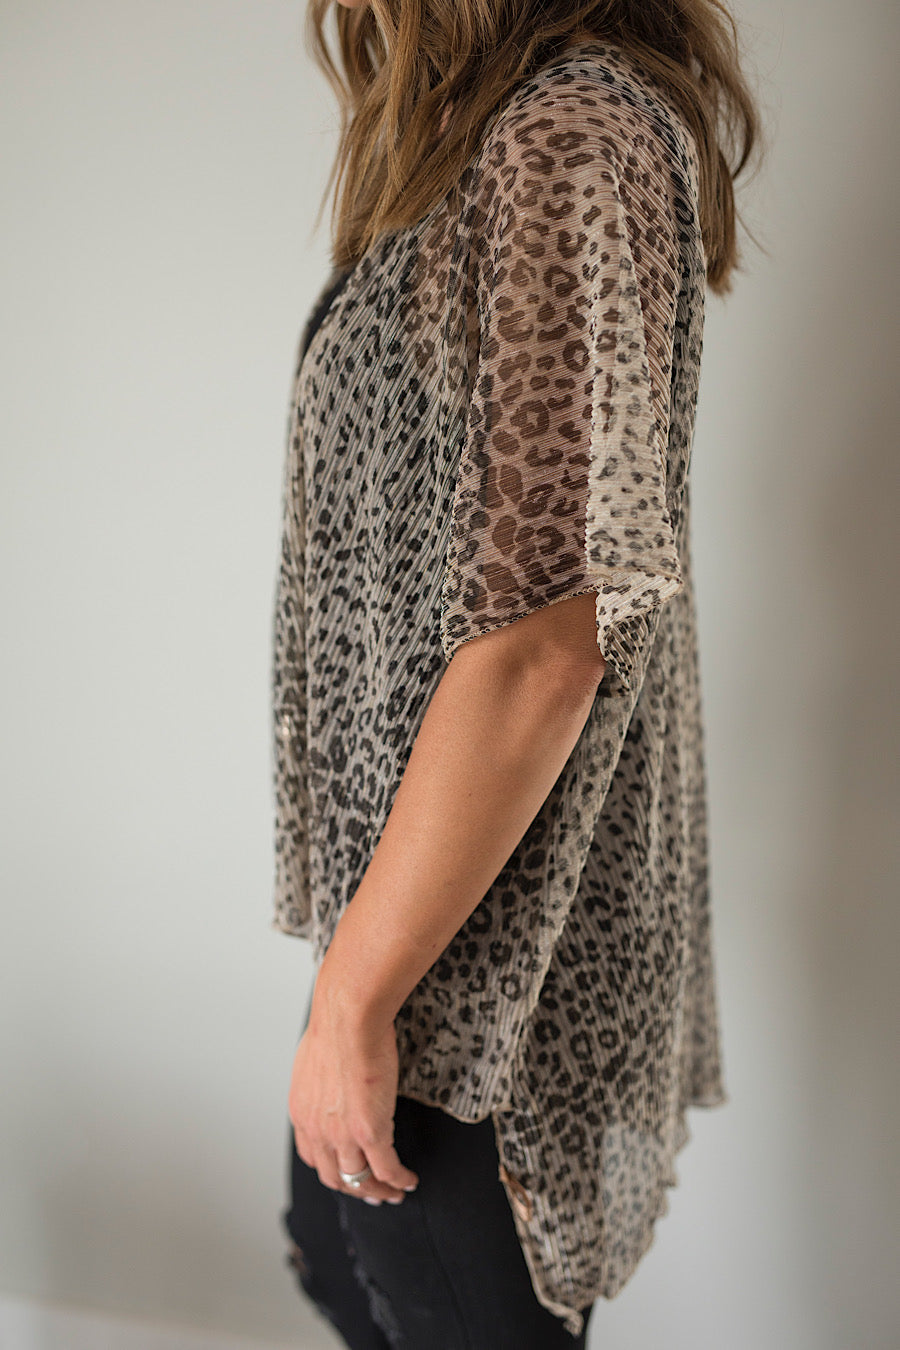 Leopard Print Kaftan Cover-Up